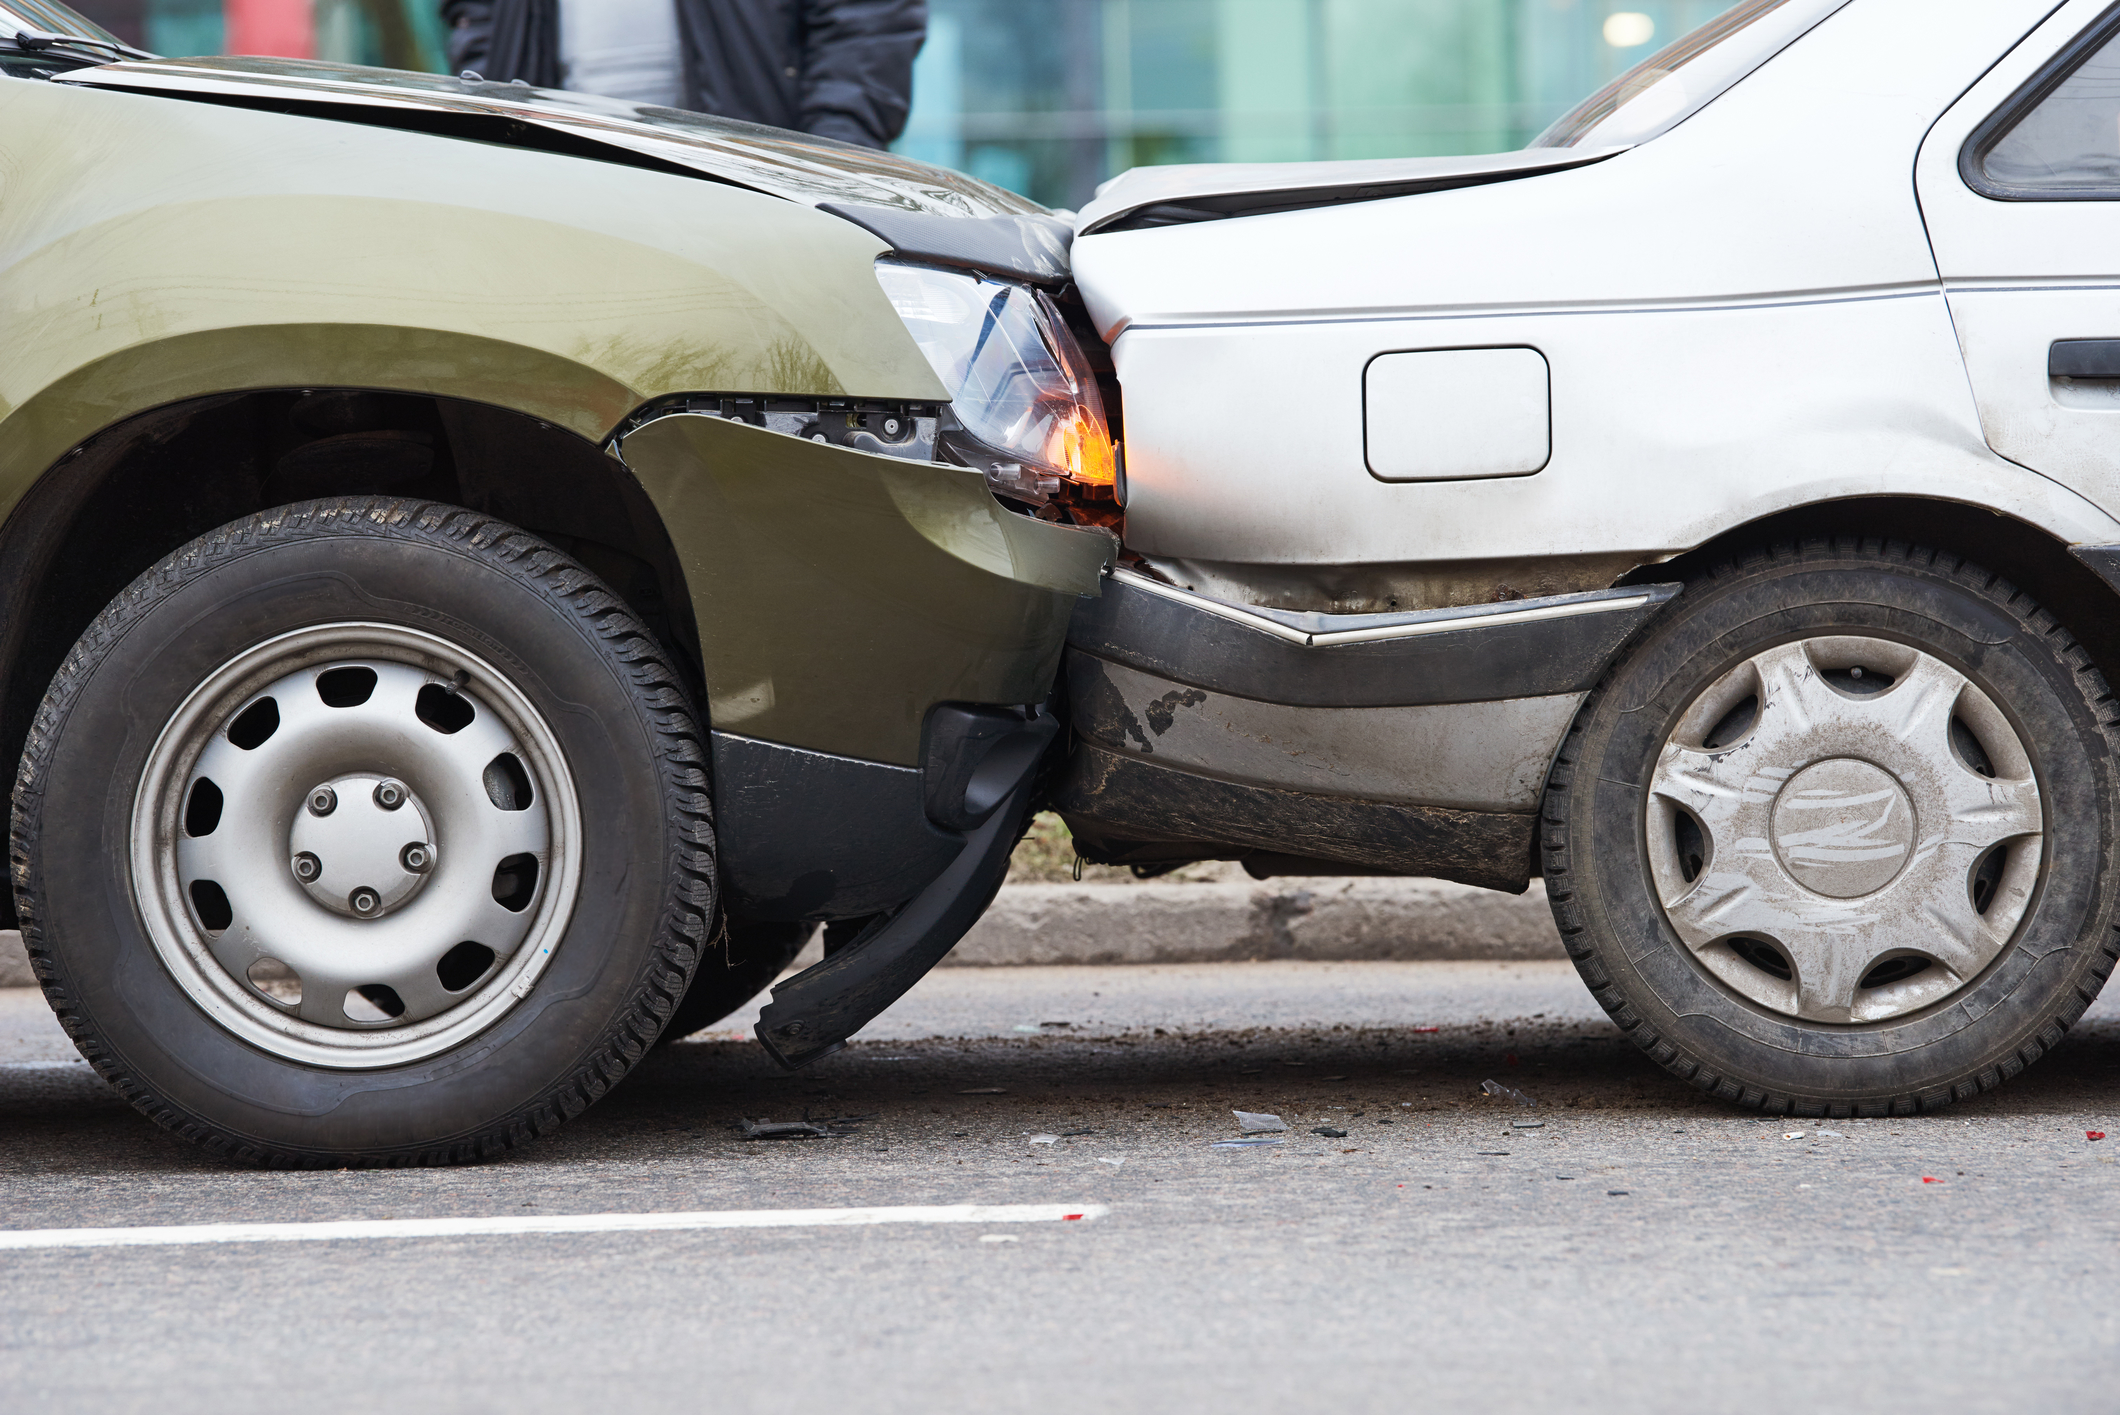 Car Defects That Can Make Accidents Worse